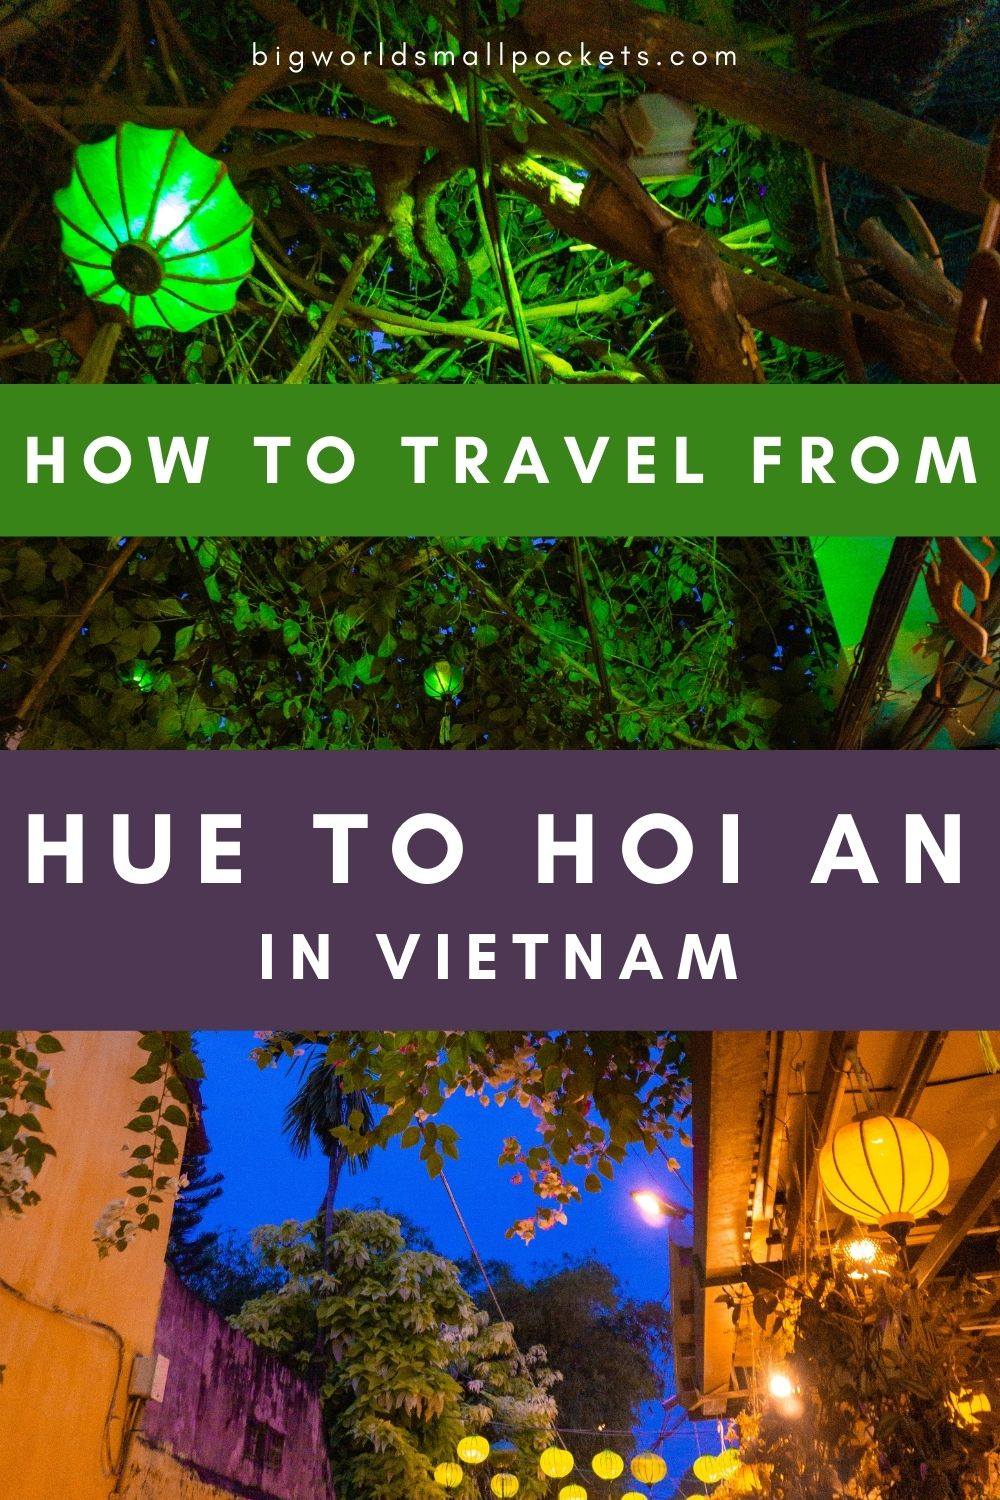 How to Travel Between Hue and Hoi An in Vietnam